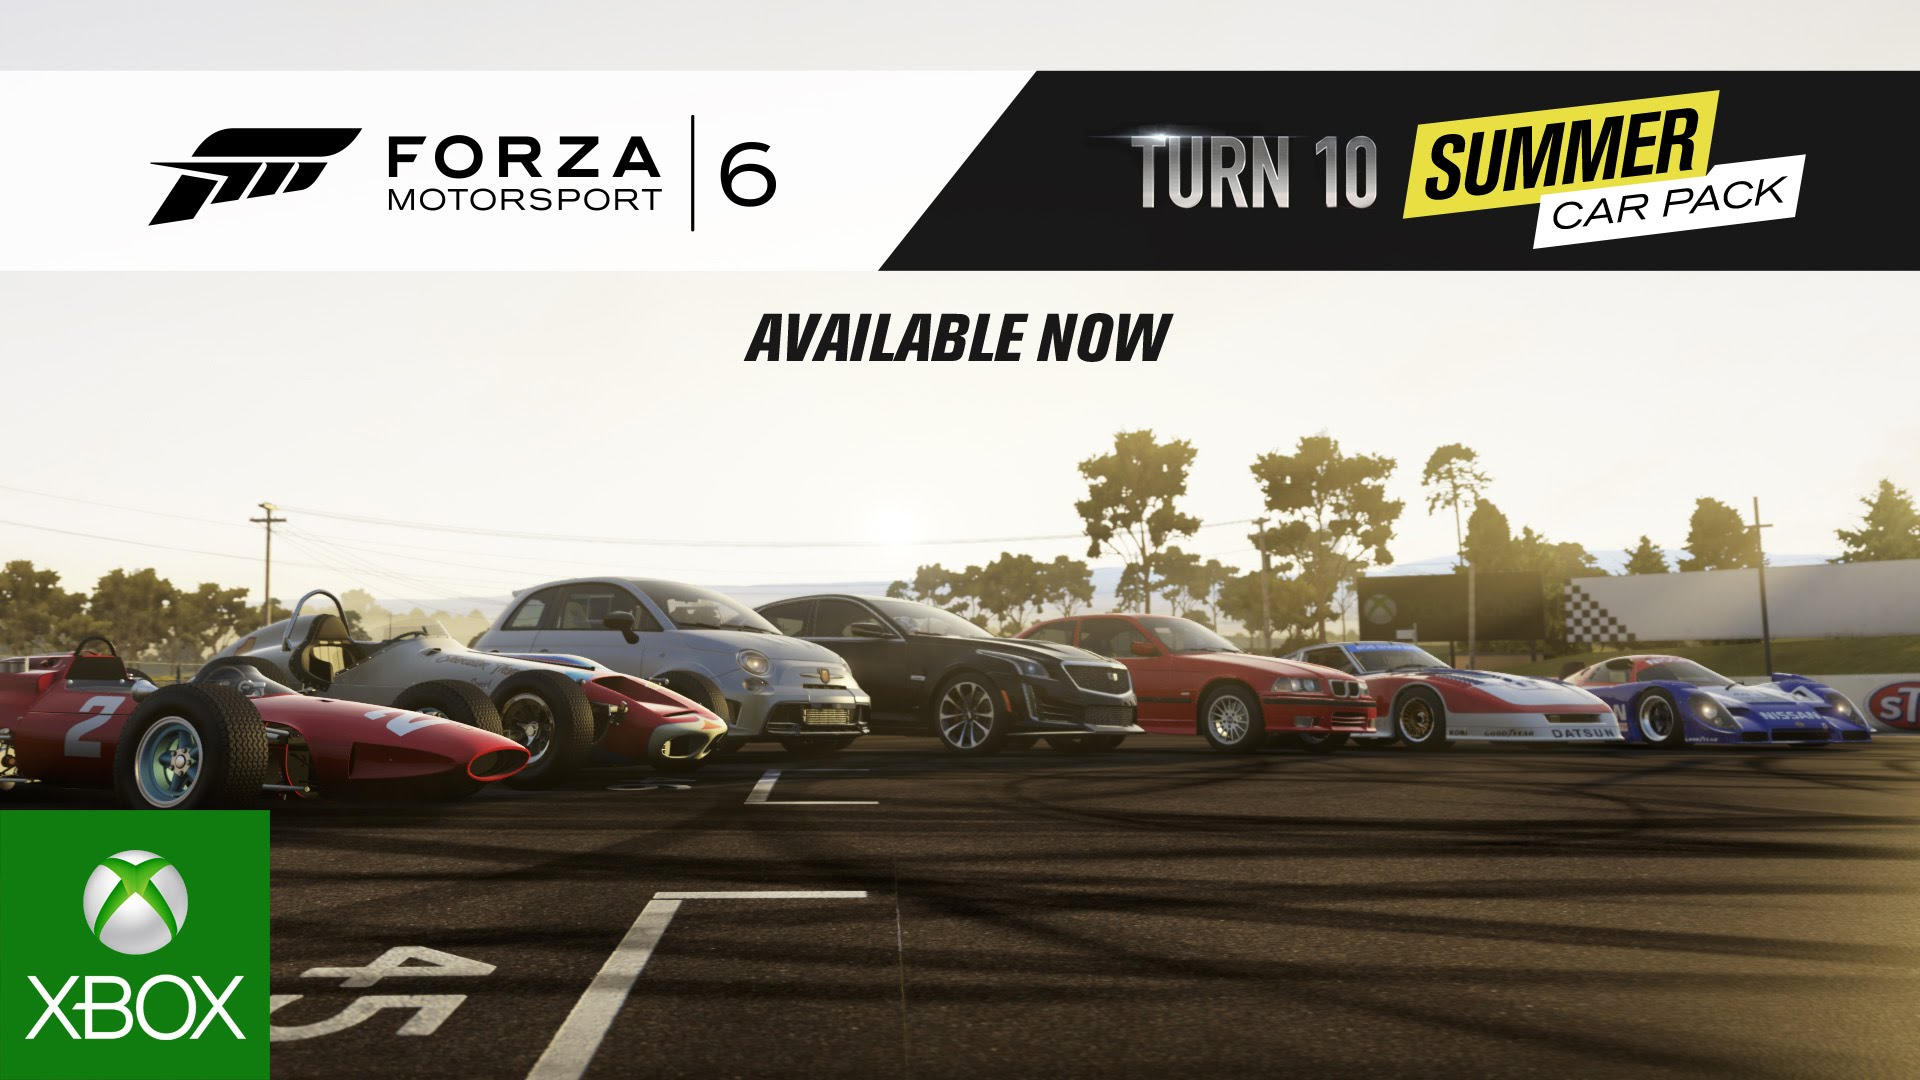 Forza Motorsport 6 Turn 10 Summer Car Pack